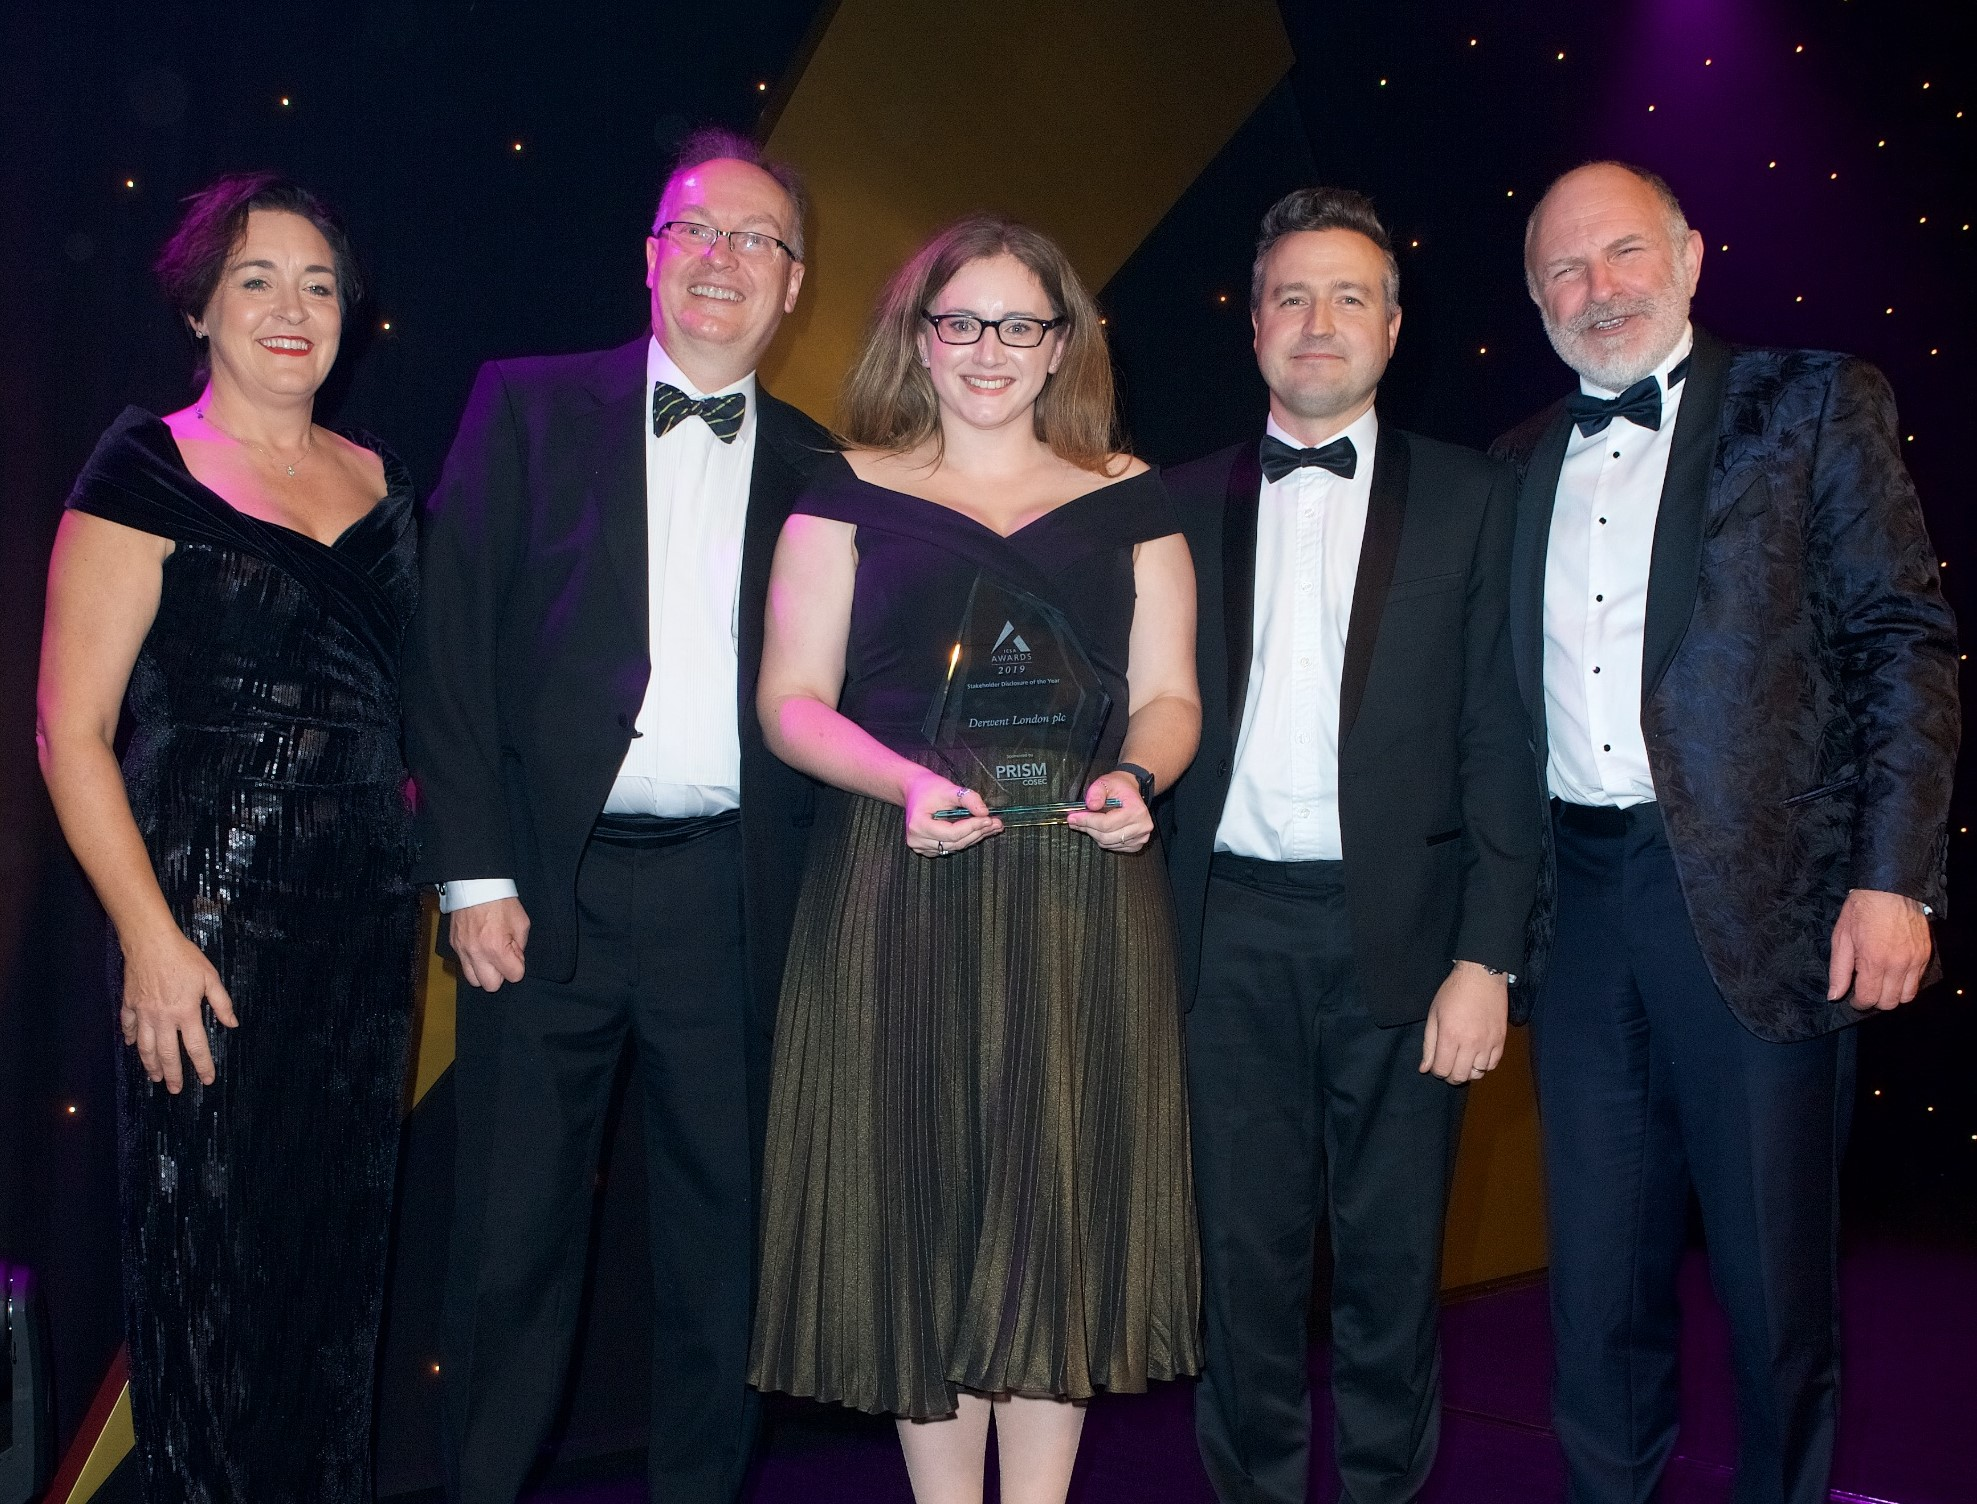 ICSA Awards - Stakeholder Disclosure of the Year